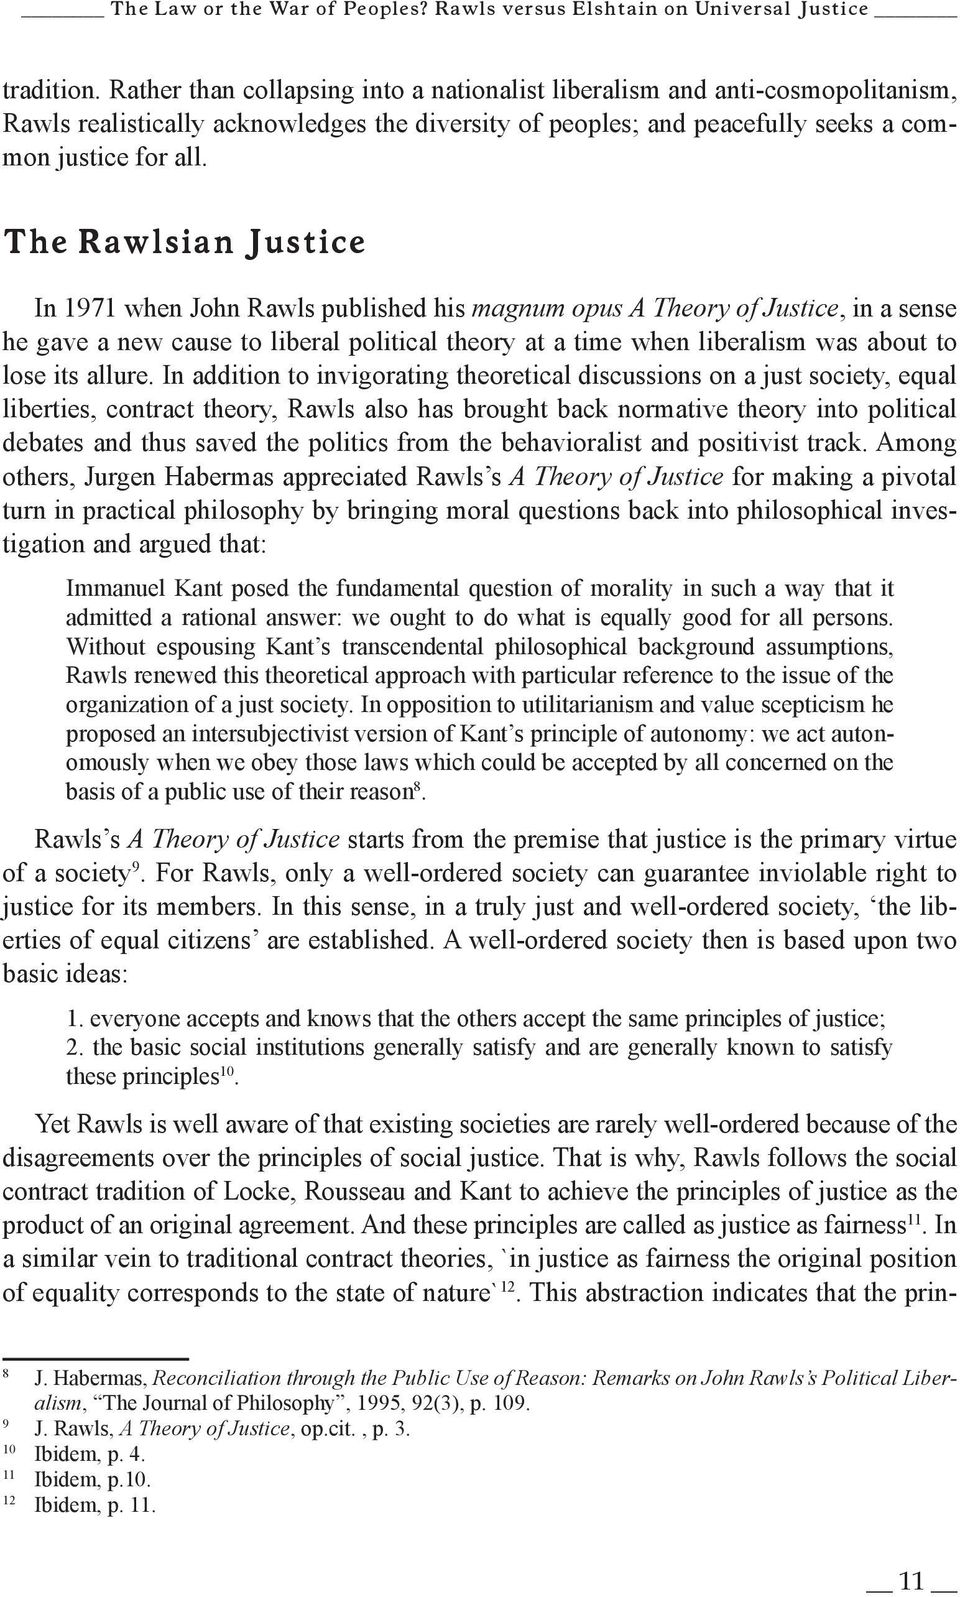 The Rawlsian Justice In 1971 when John Rawls published his magnum opus A Theory of Justice, in a sense he gave a new cause to liberal political theory at a time when liberalism was about to lose its